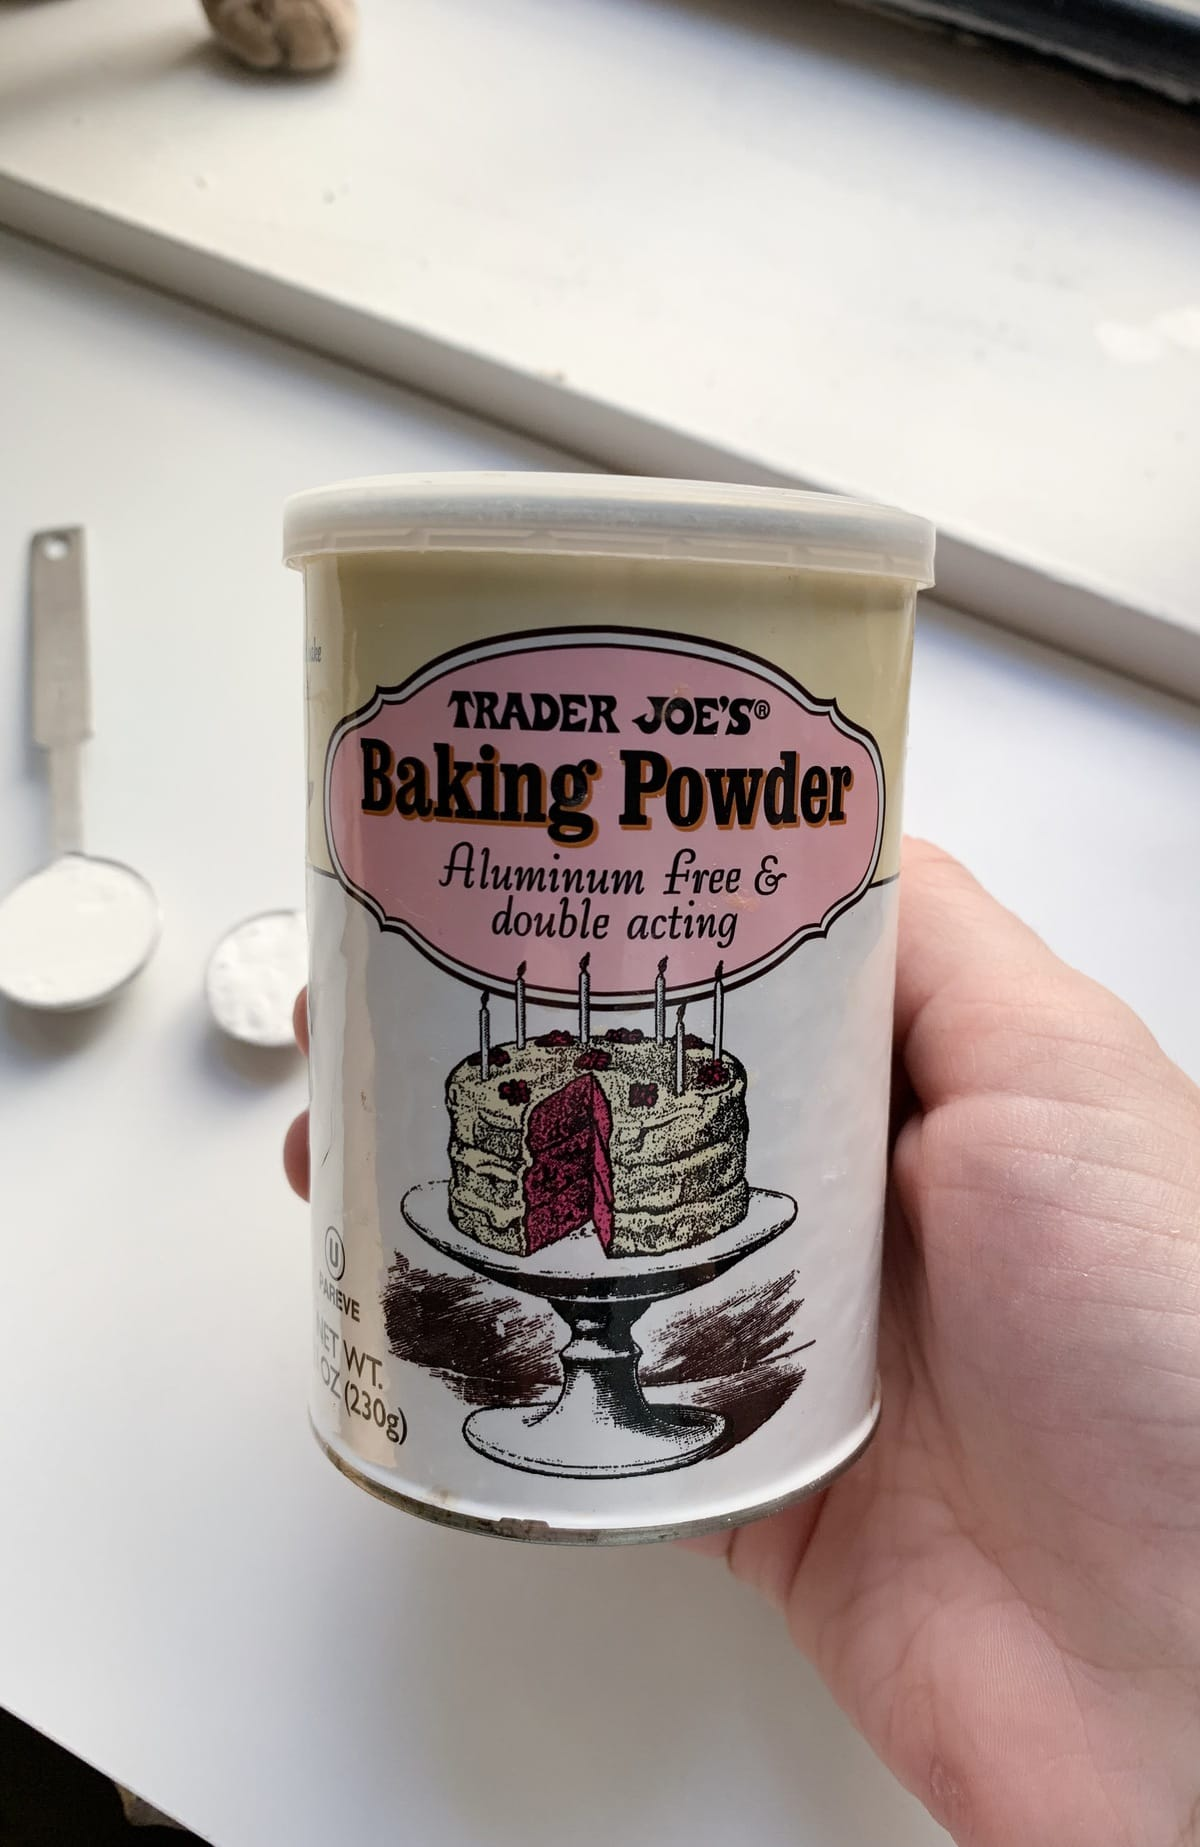 Hand holding a container of baking powder